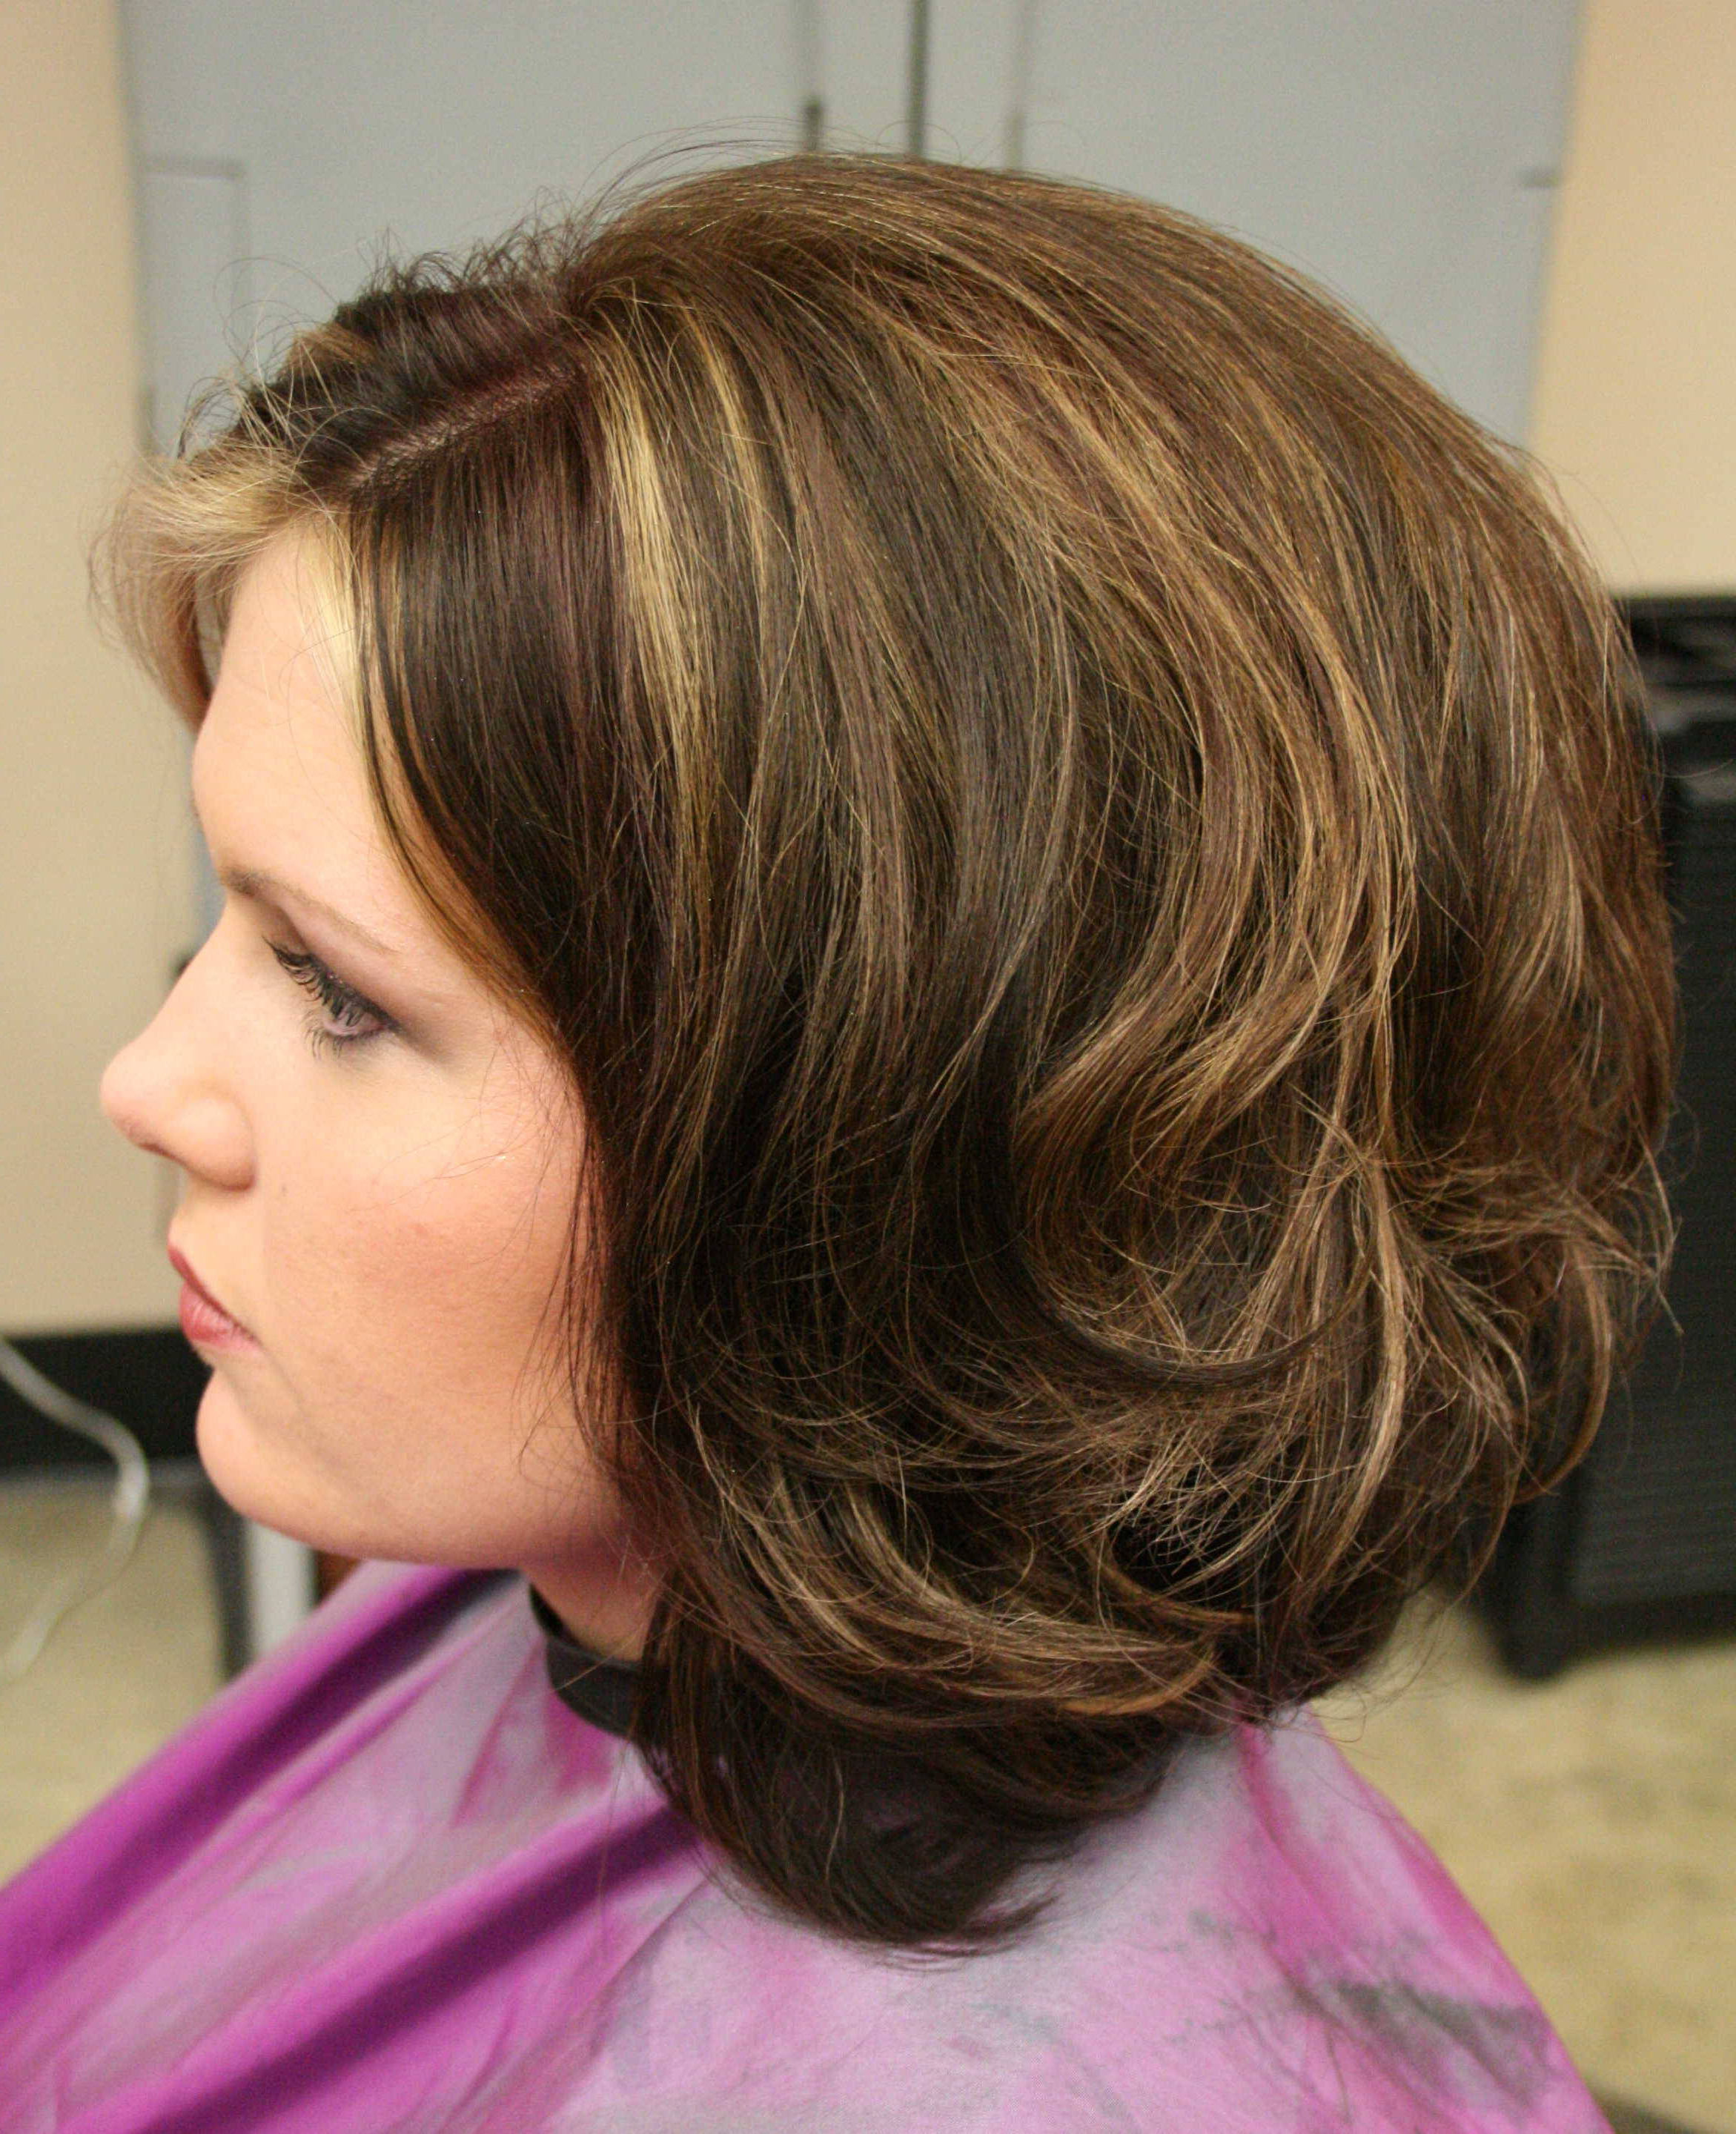 20+ Amazing Hairstyles For Women Over 50 With Thin And Thick Hairs Within Bouncy Bob Hairstyles For Women 50+ (View 2 of 20)